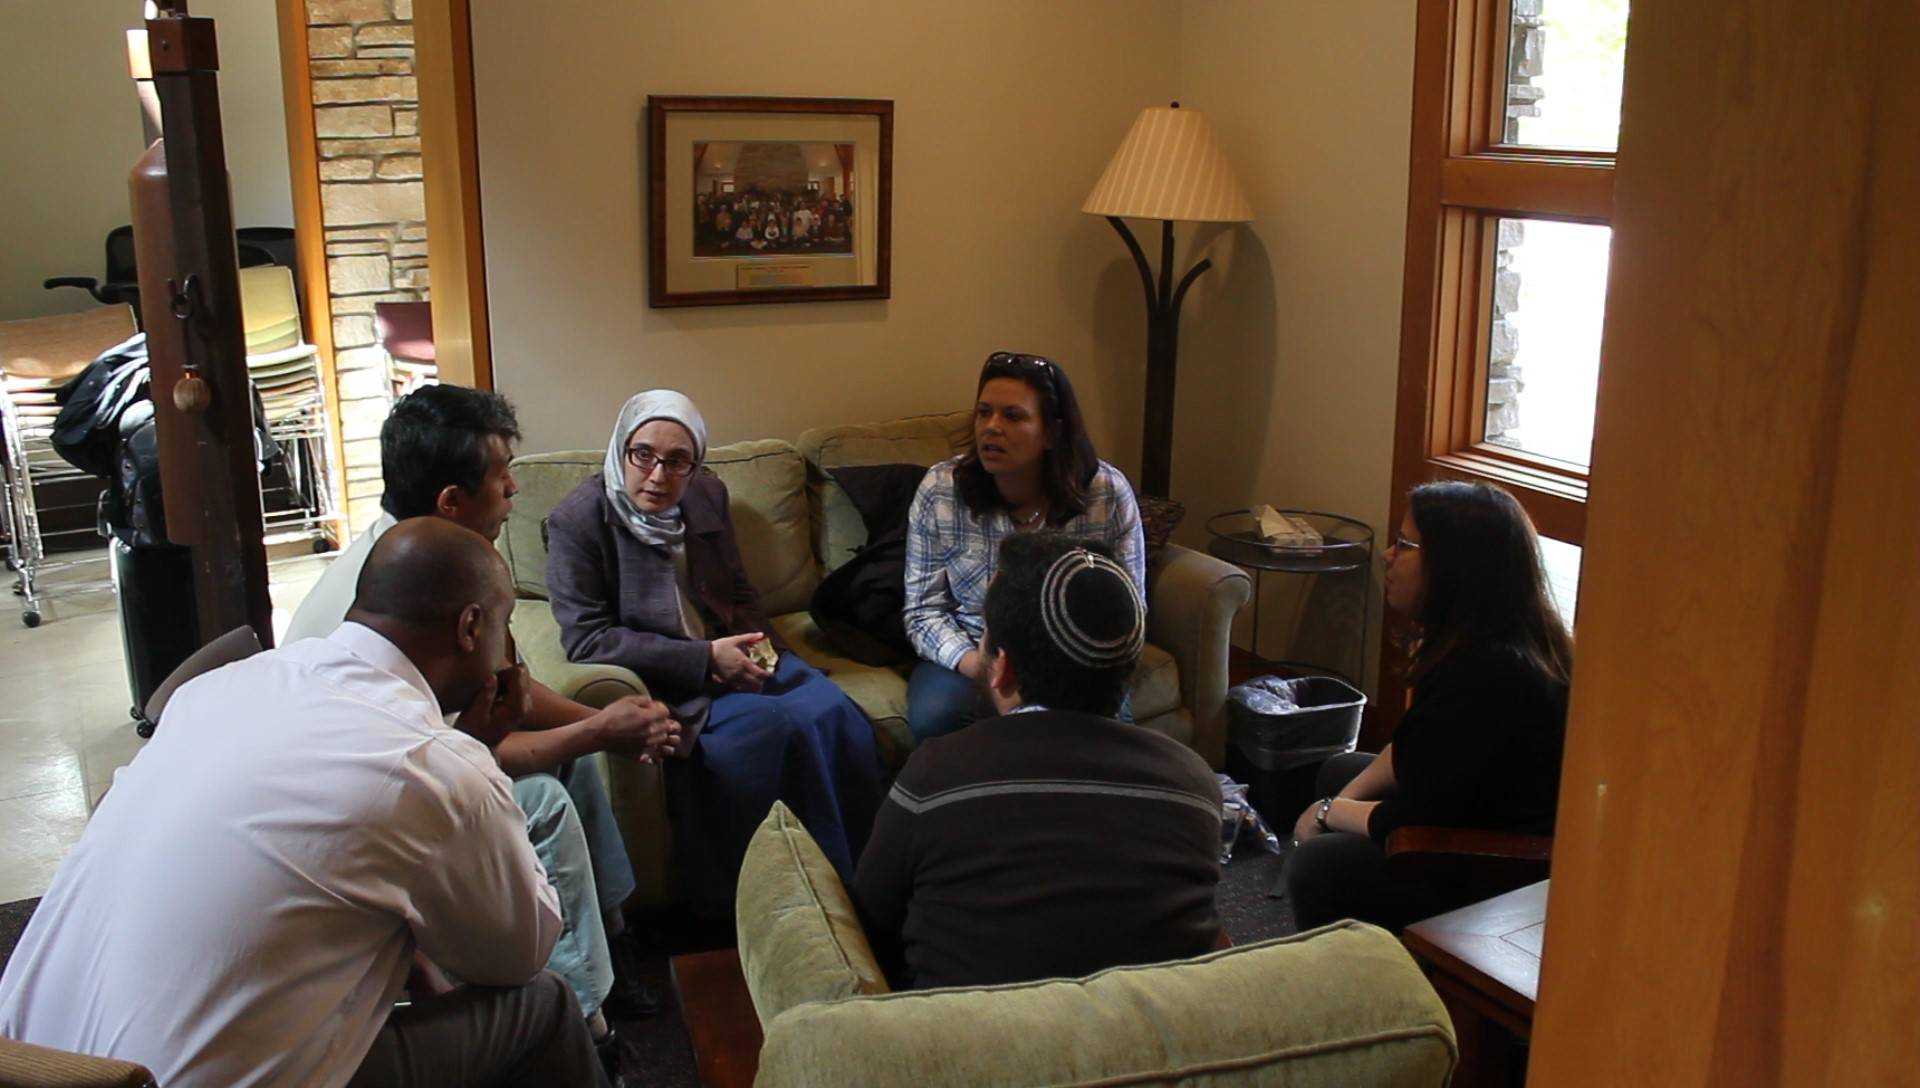 Interfaith discussion group